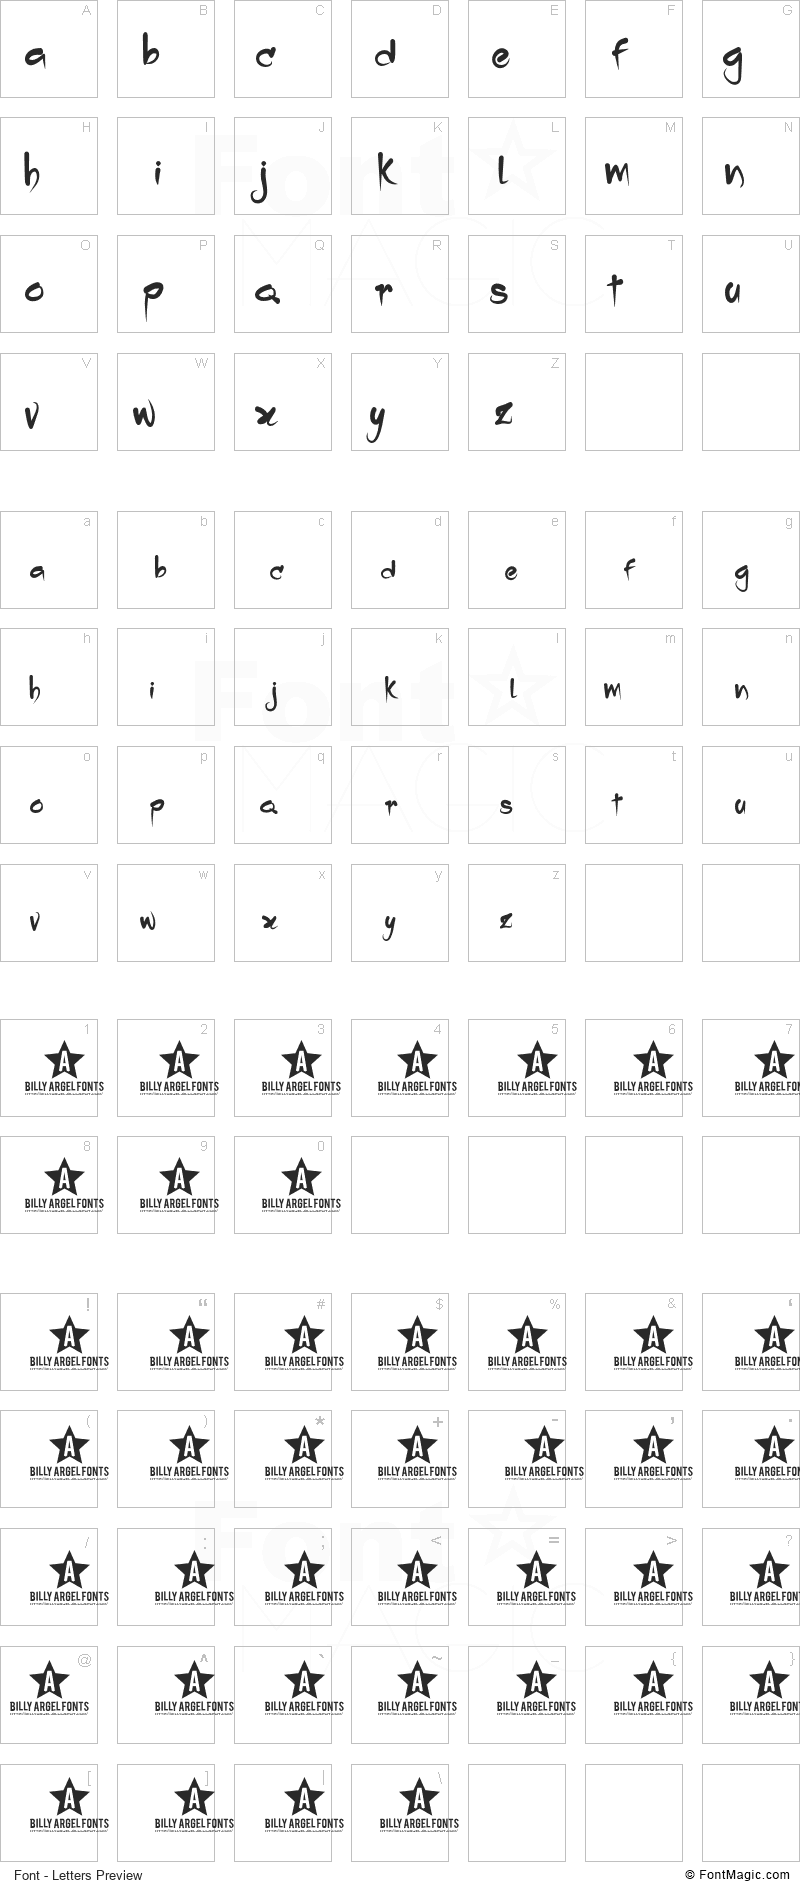 Dropping Font - All Latters Preview Chart